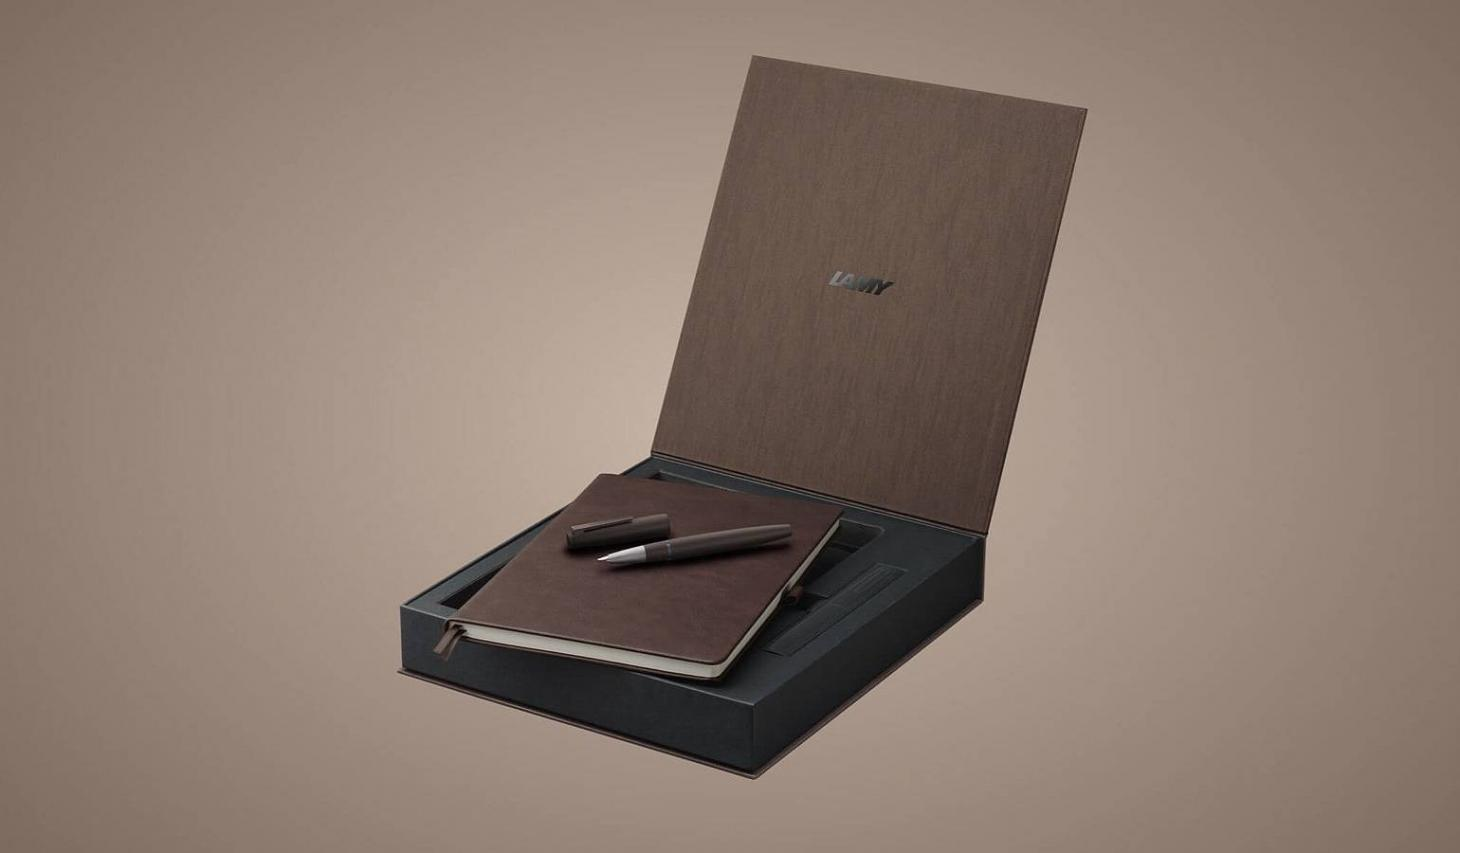 LAMY 2000 limited edition